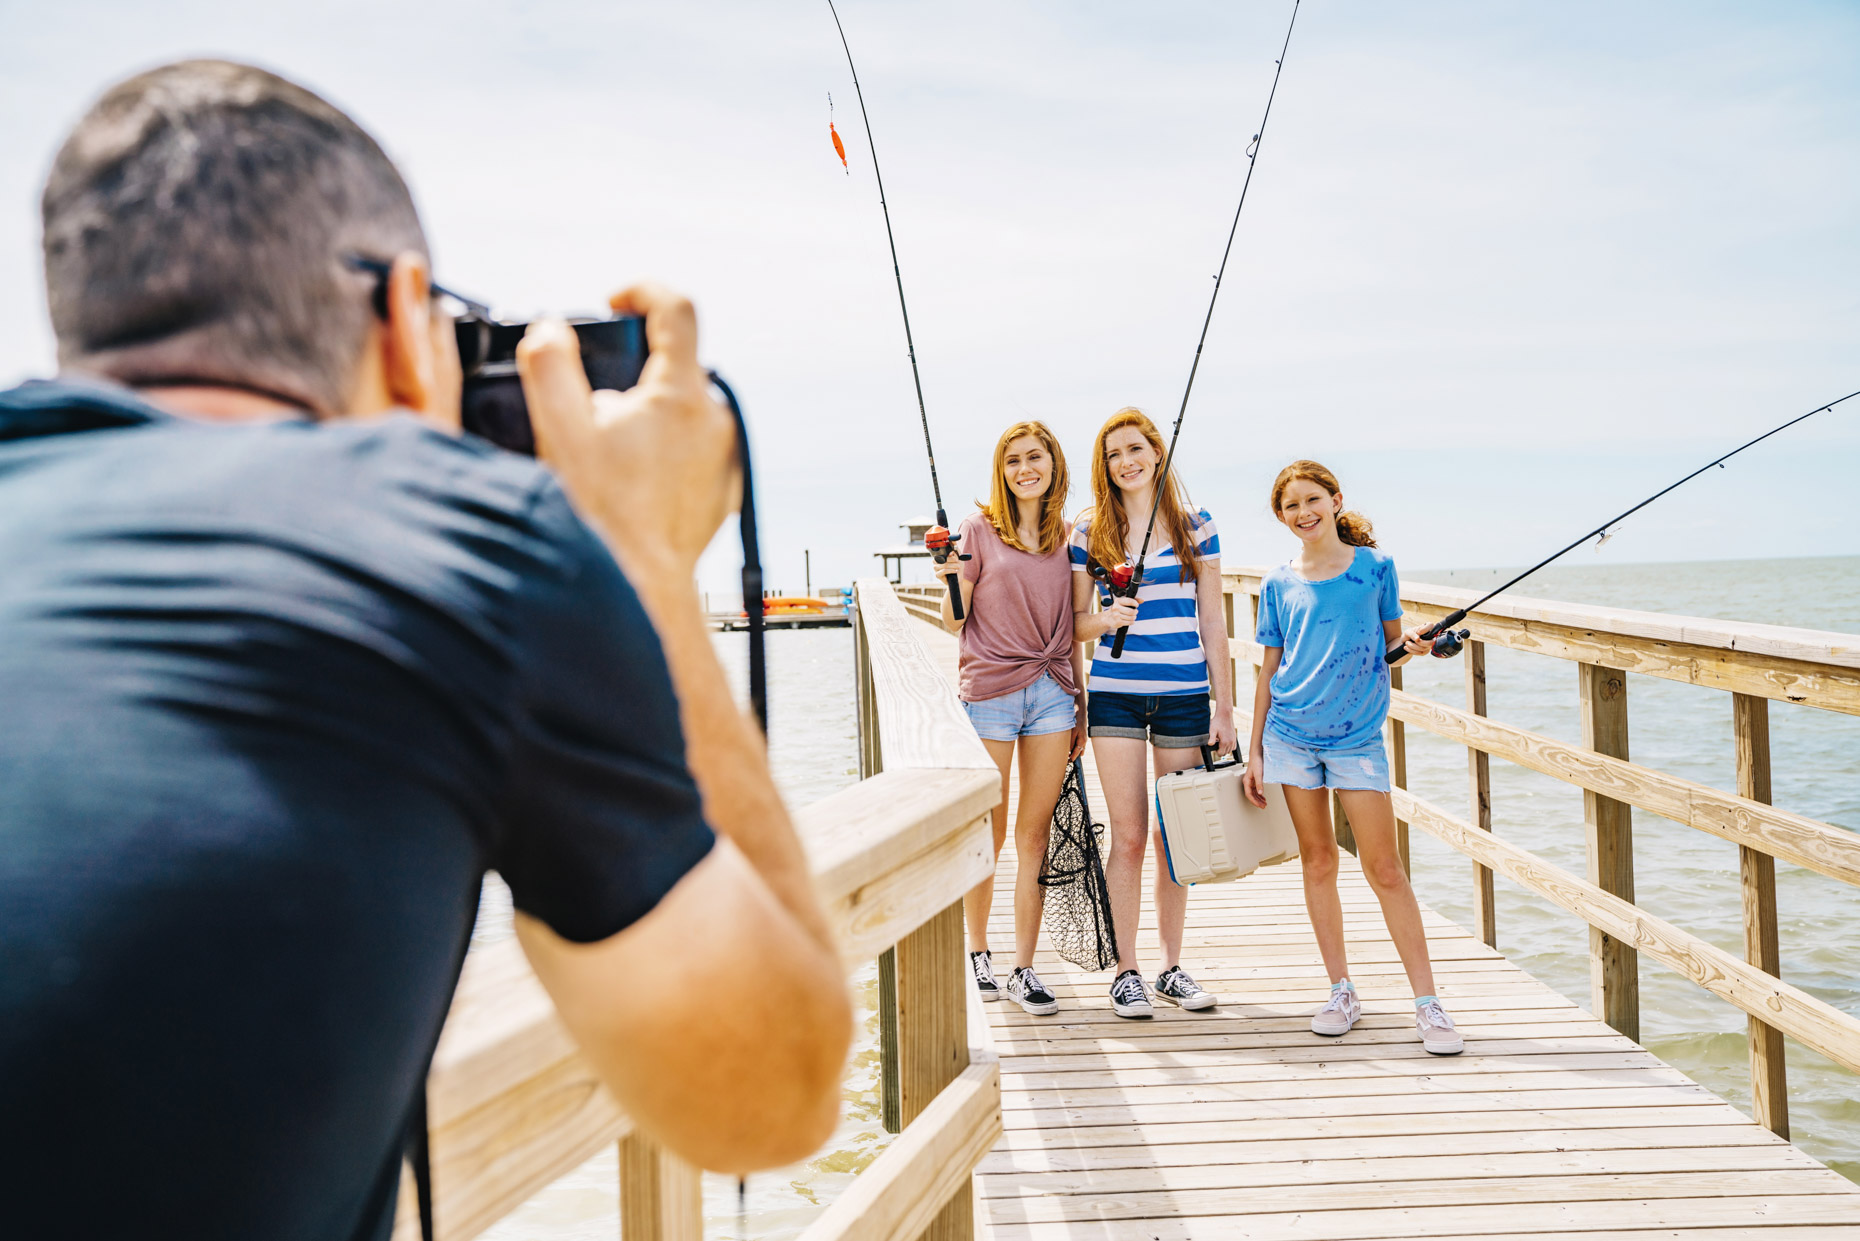 Man taking photo of girls on fishing dock